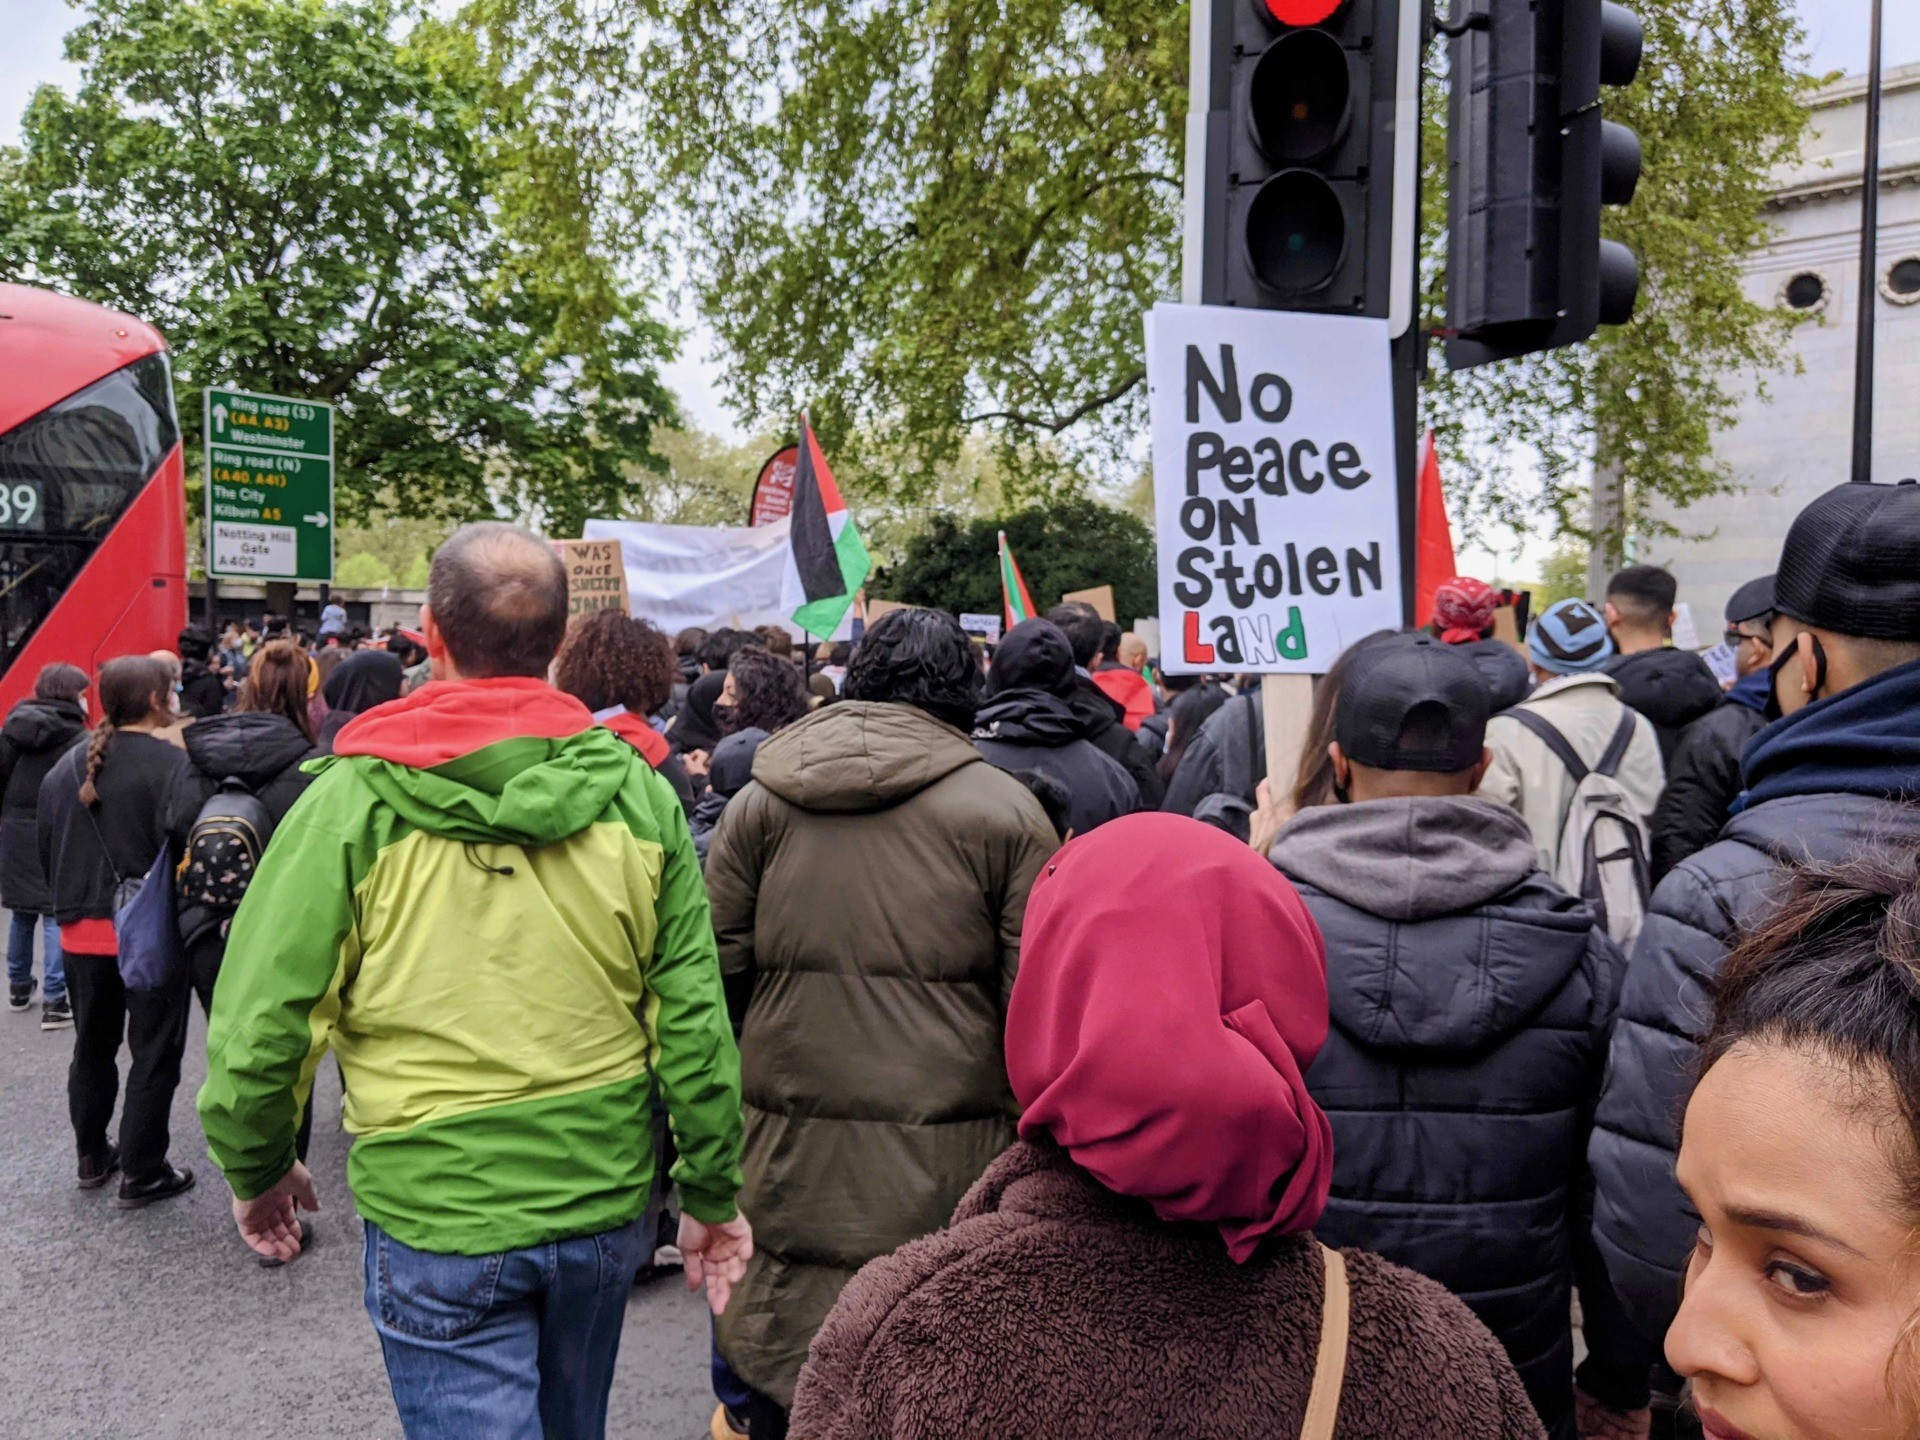 """A protester is seen carrying a placard reading """"No Peace on Stolen Land"""", at an anti-Israel protest in London. May 15th, 2021. Kurt Zindulka, Breitbart News"""